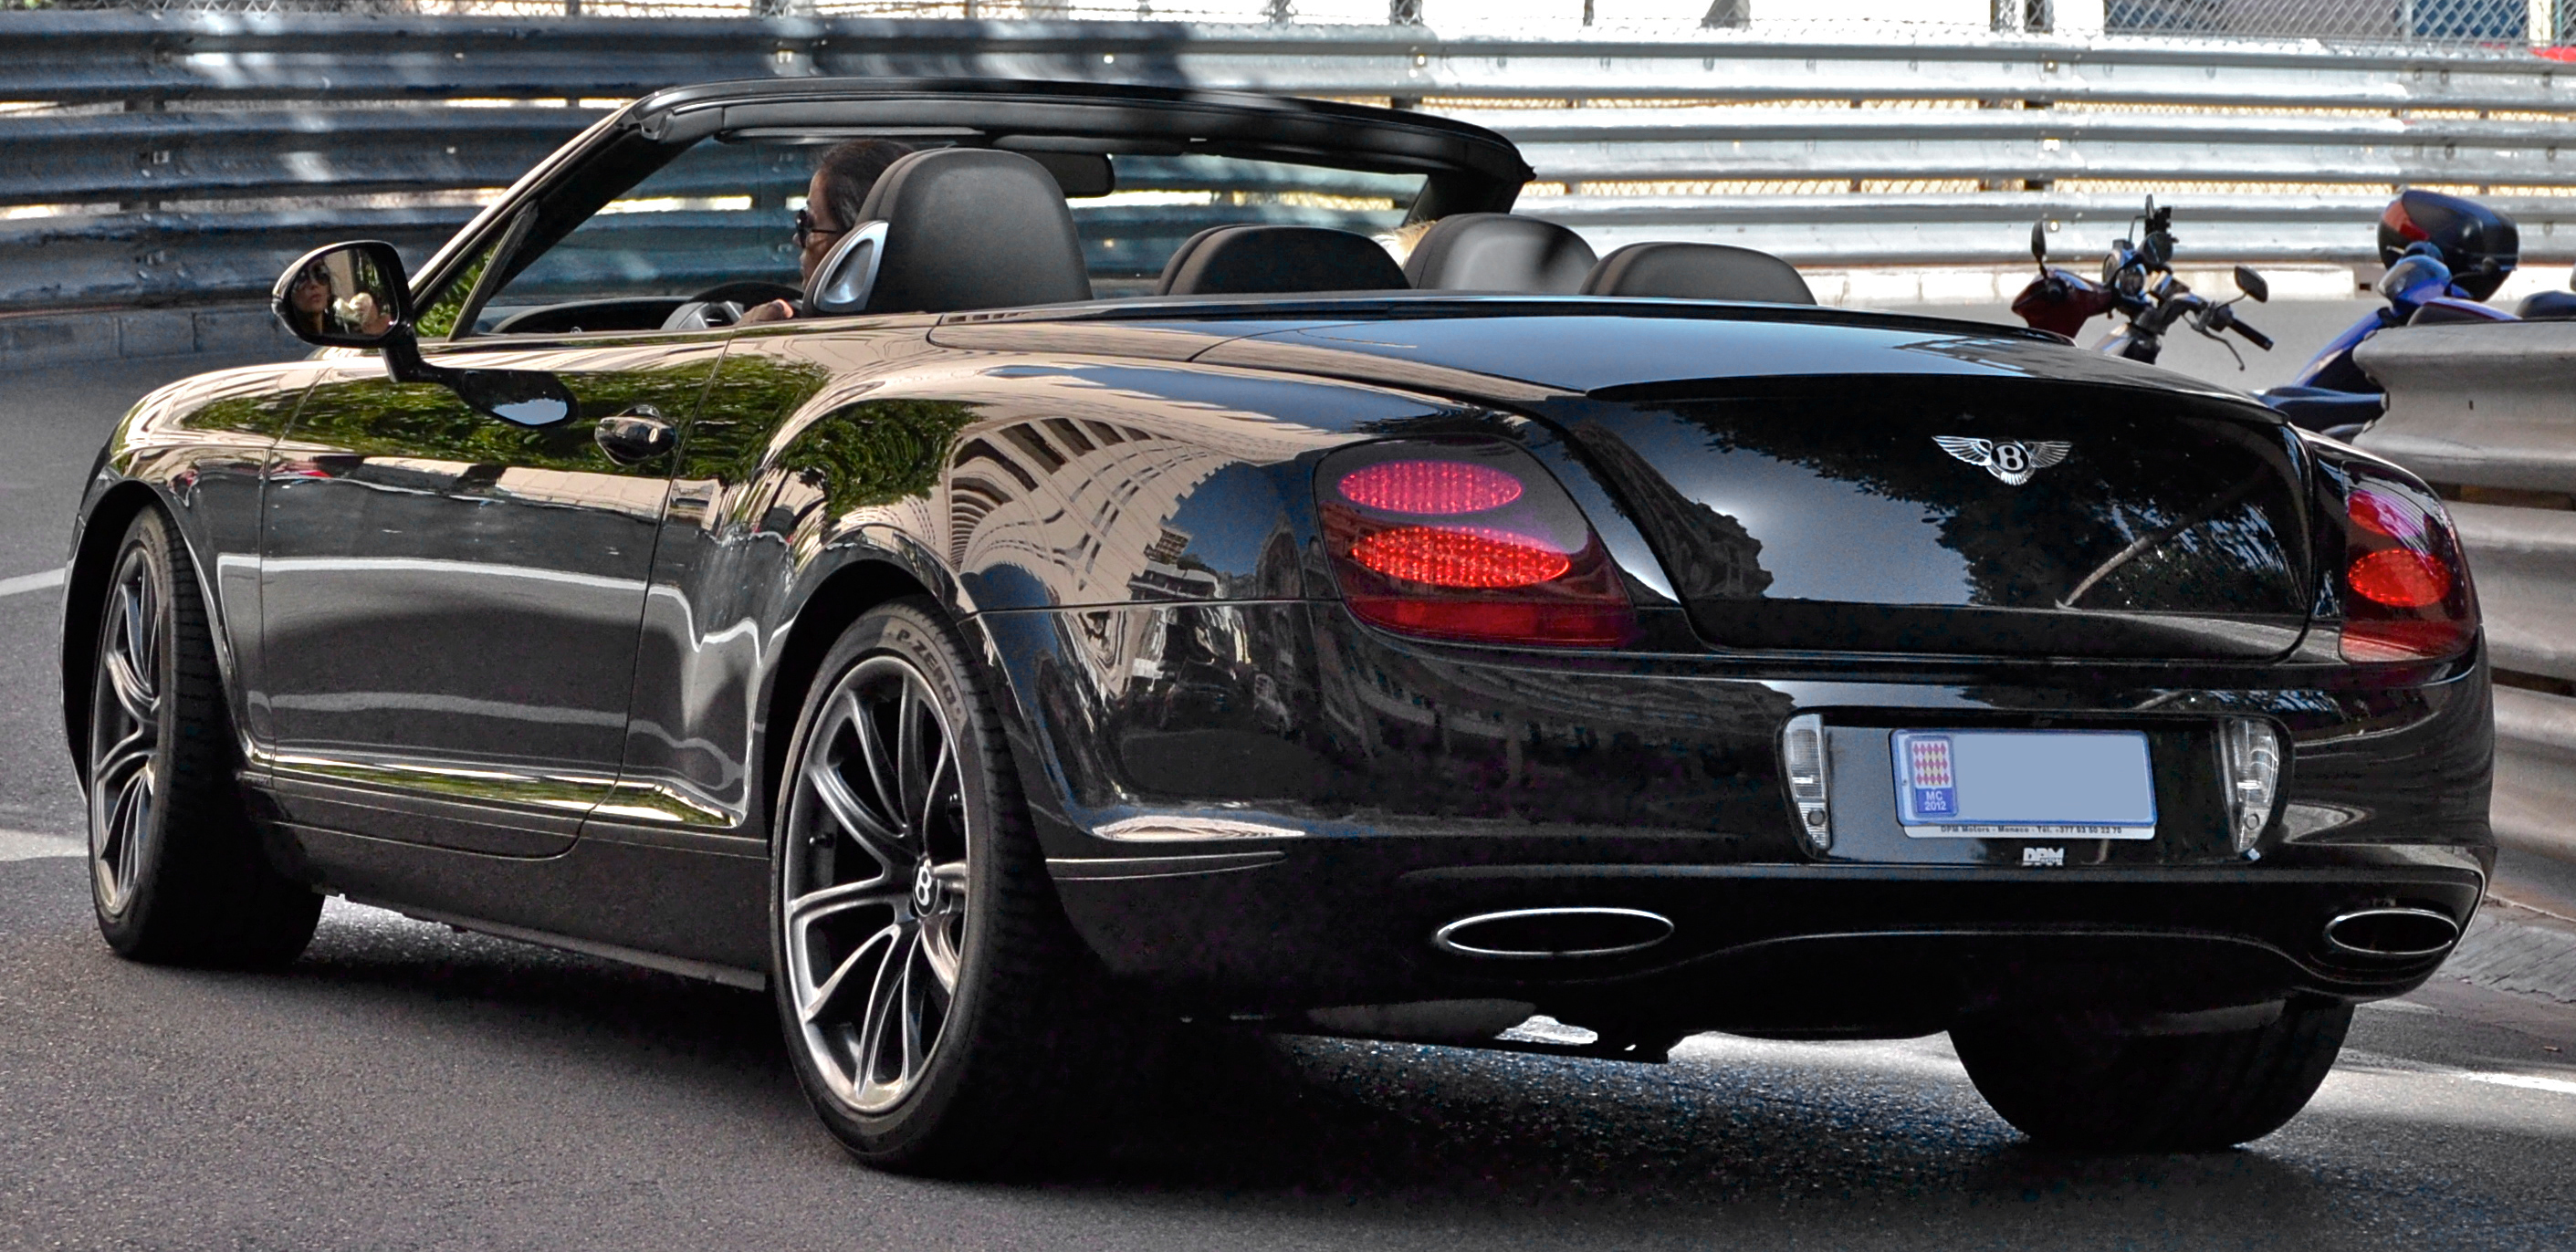 Bentley_Supersport_Convertible_-_Flickr_-_Alexandre_Prévot_1_cropped.jpg#asset:3244